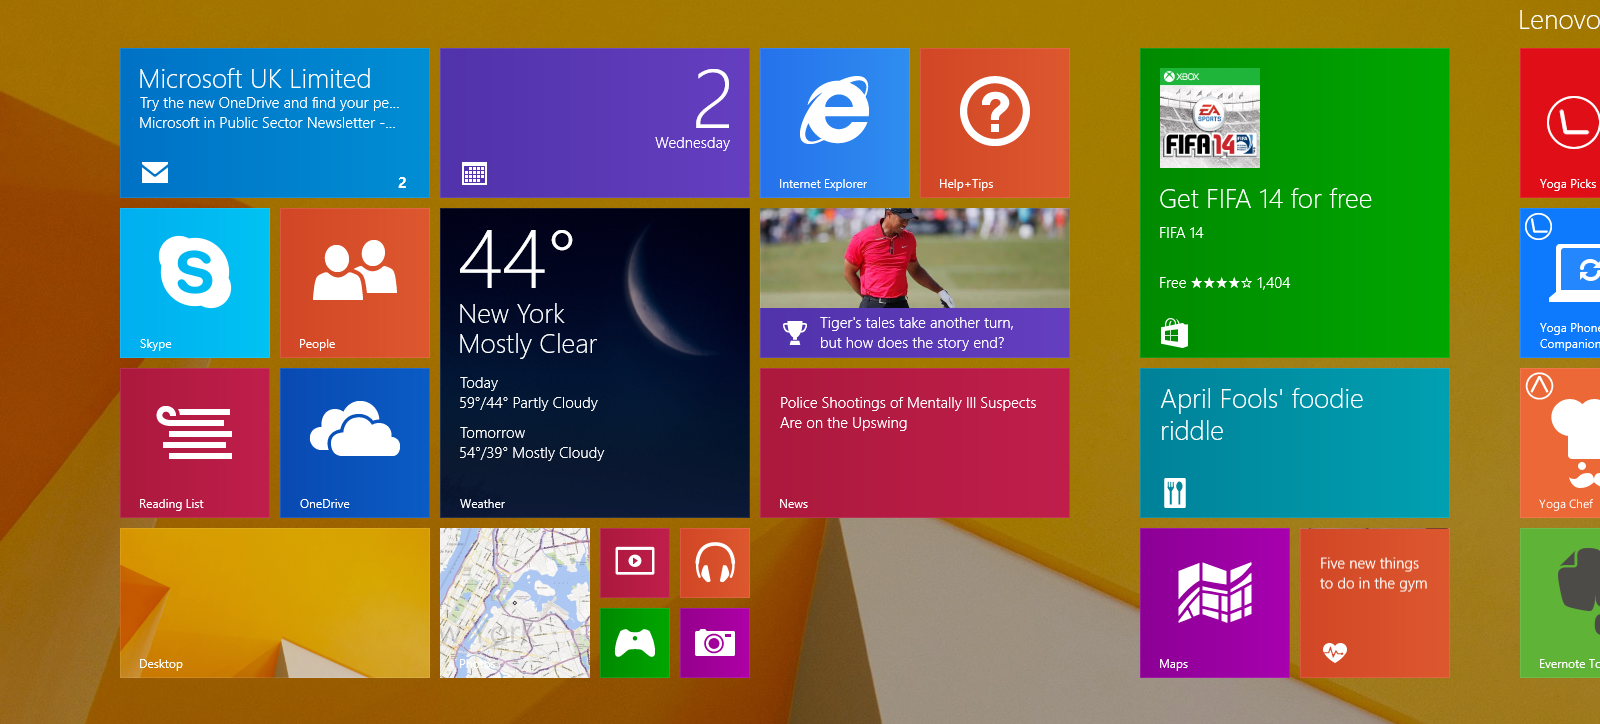 A Second Windows 8.1 Update Is Coming (But Don't Expect Much)